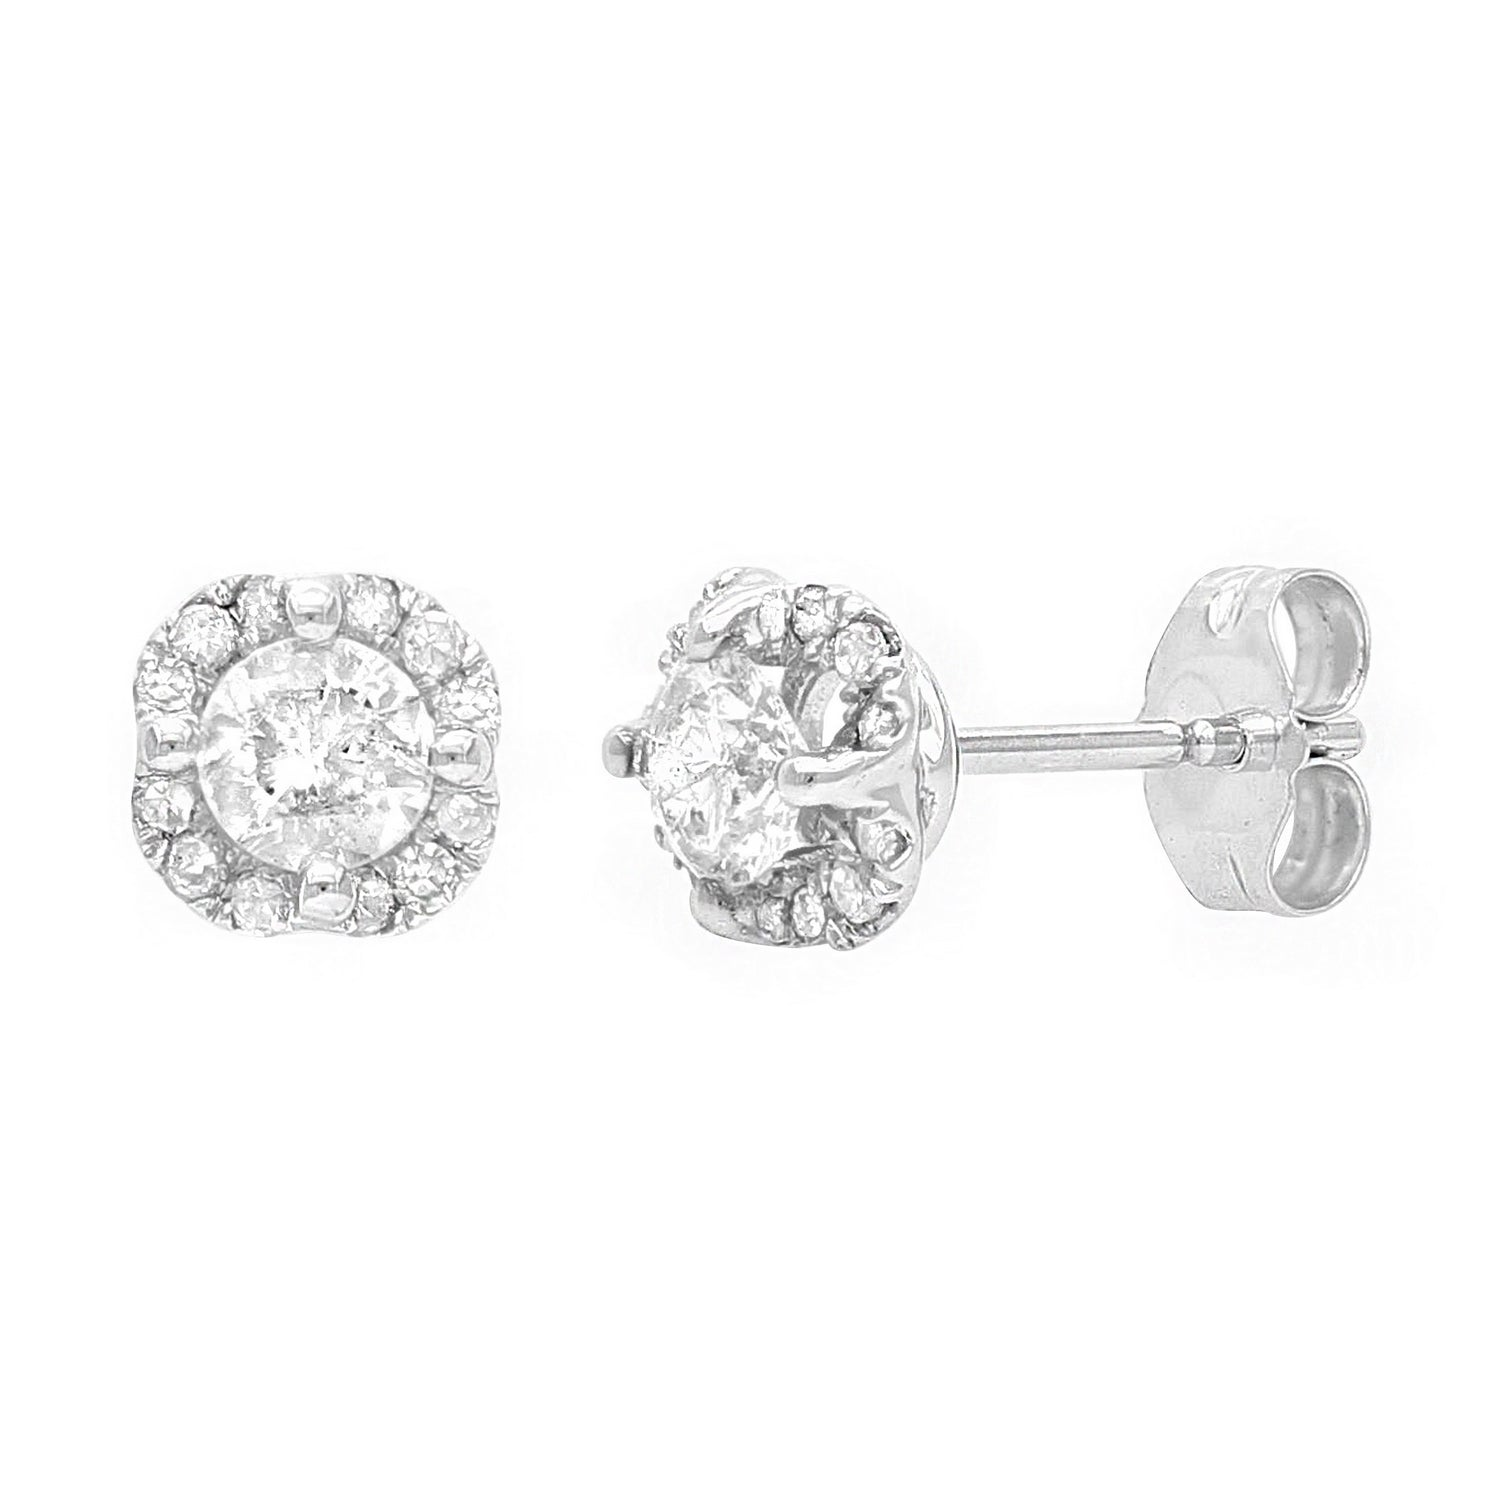 c3dd8e283 10k White Gold Diamond Stud Earrings in Floral Shape with Friction Back  (0.70 cttw, I-J Color, I1-I2 Clarity)